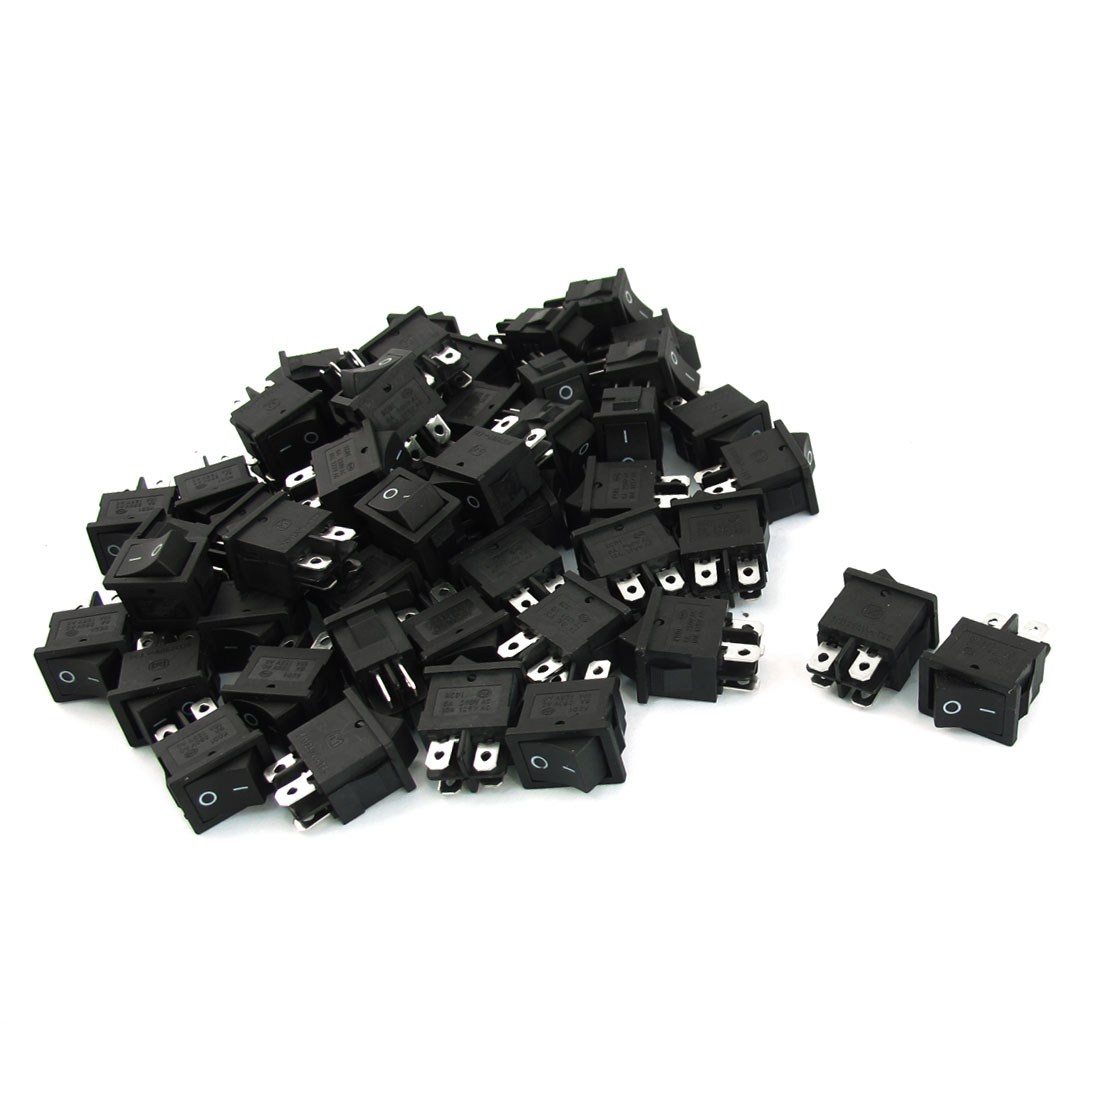 50PCS AC 250V/125V 5A/10A DPST Normal Open 4Pin 2-Position Snap in Mounting Boat Rocker Switch Black